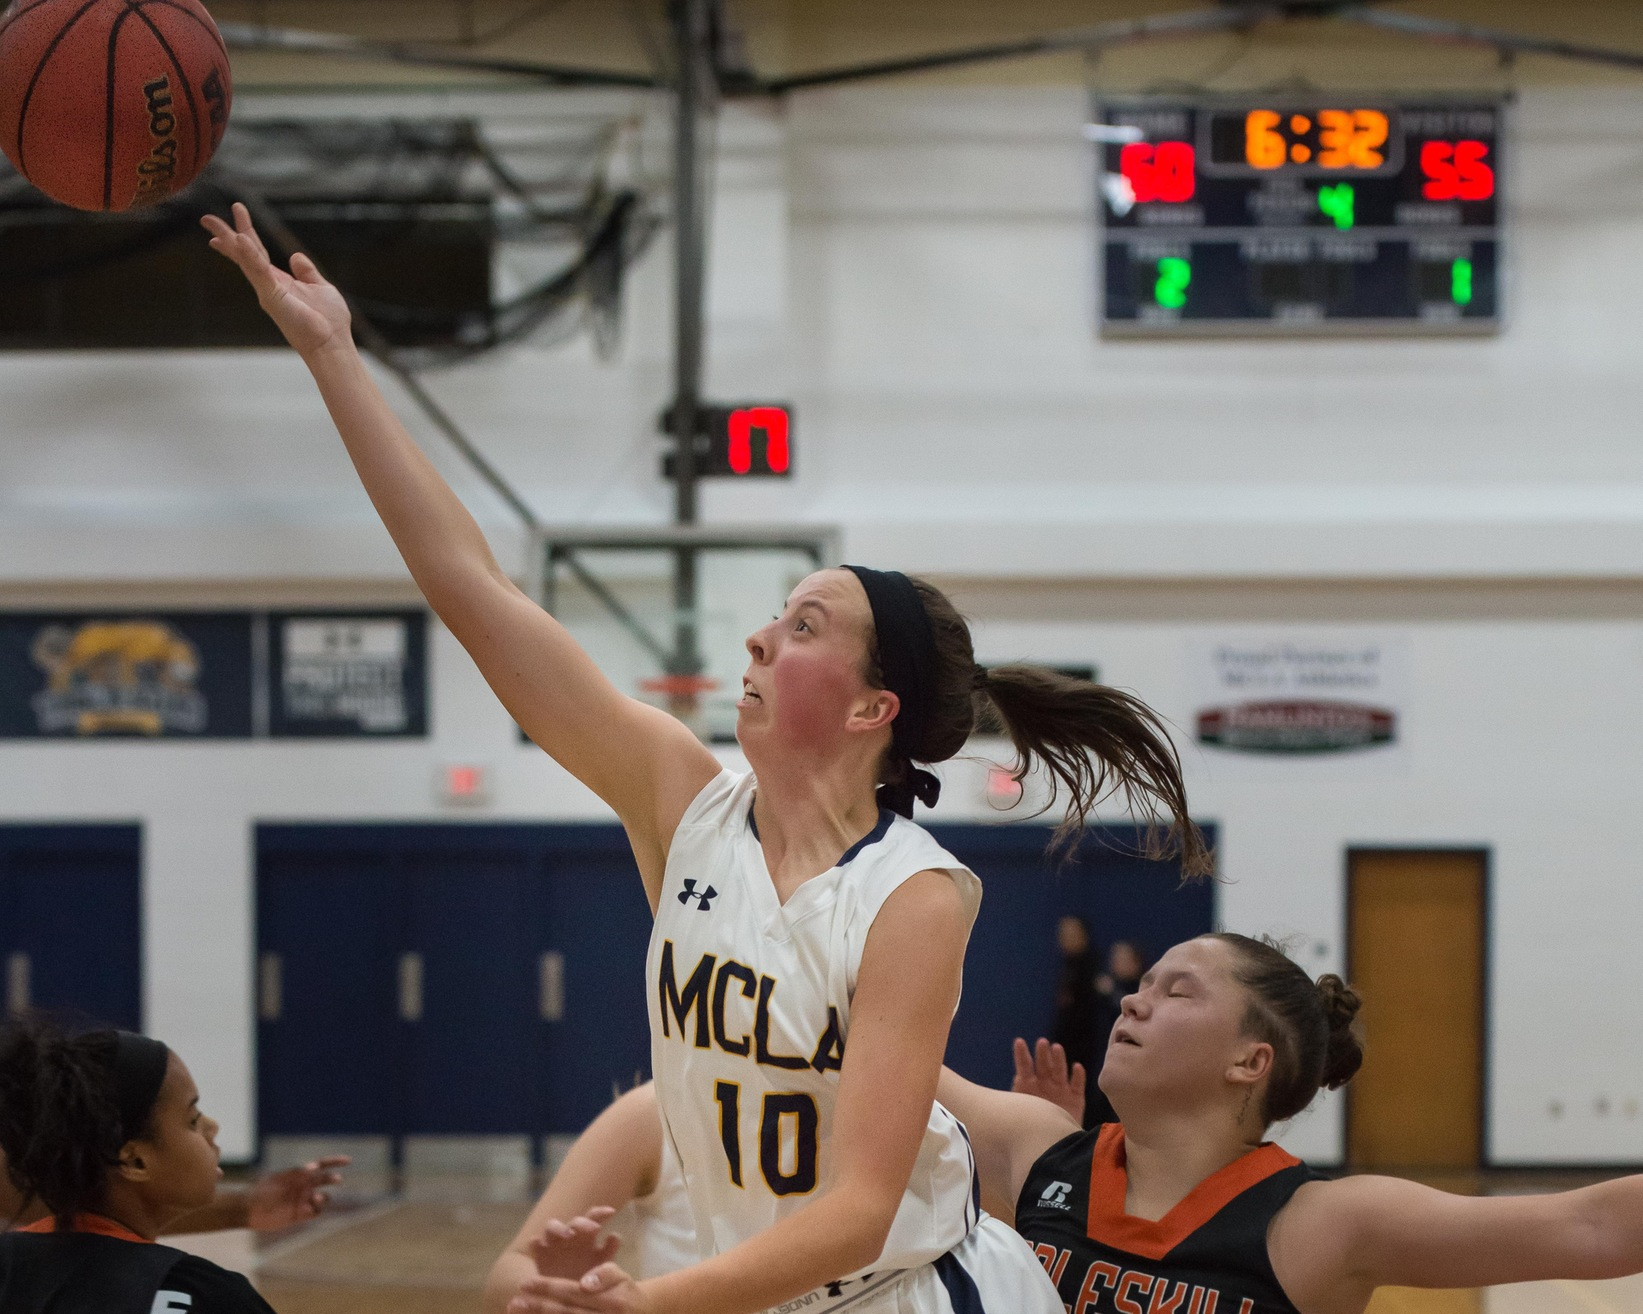 Trailblazer women suffer loss at Worcester State 67-48